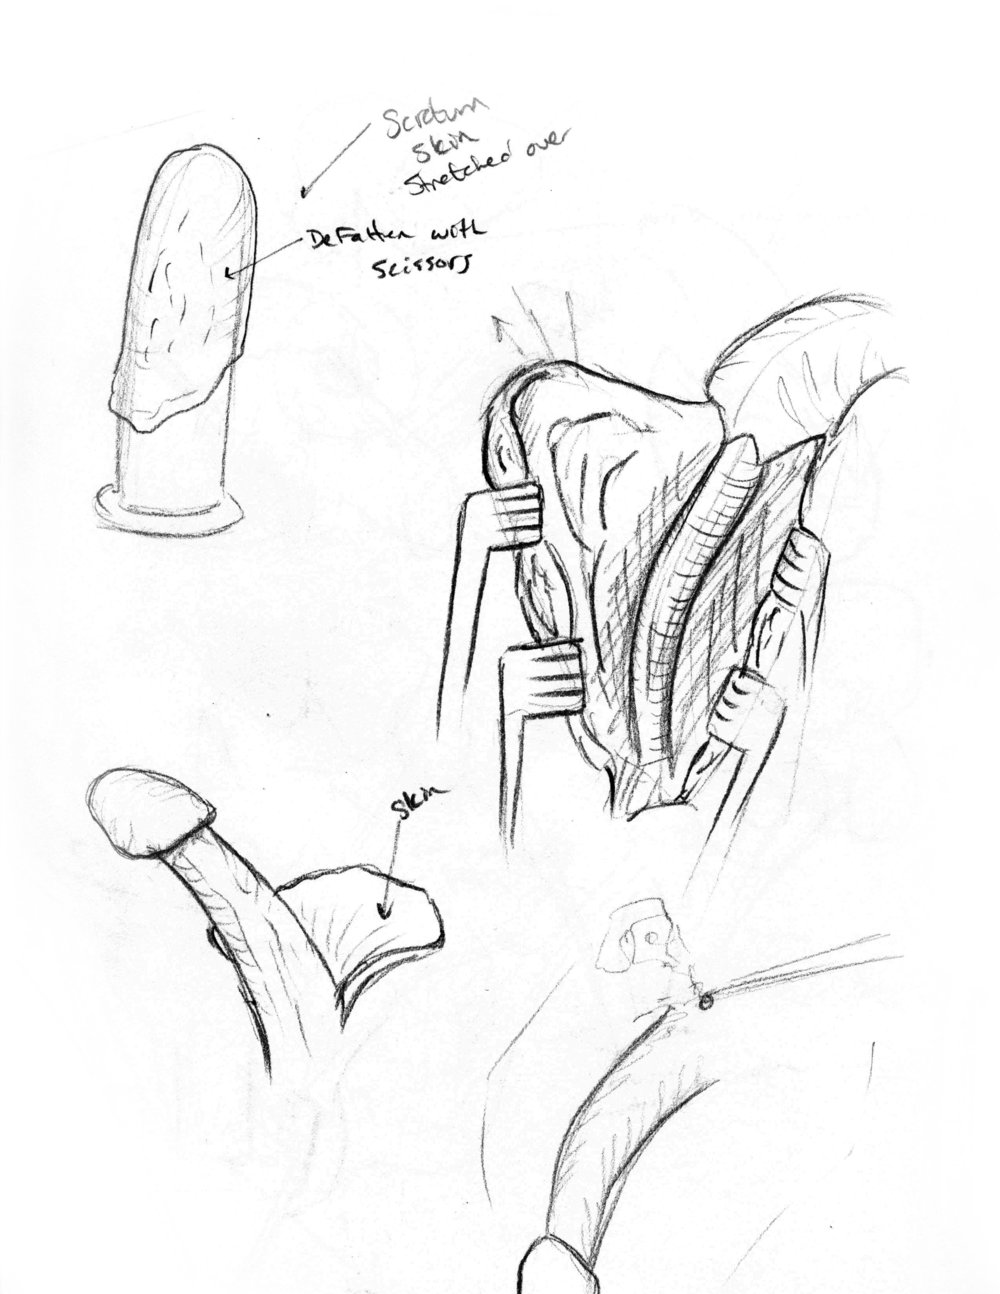 Vaginoplasty surgical sketch